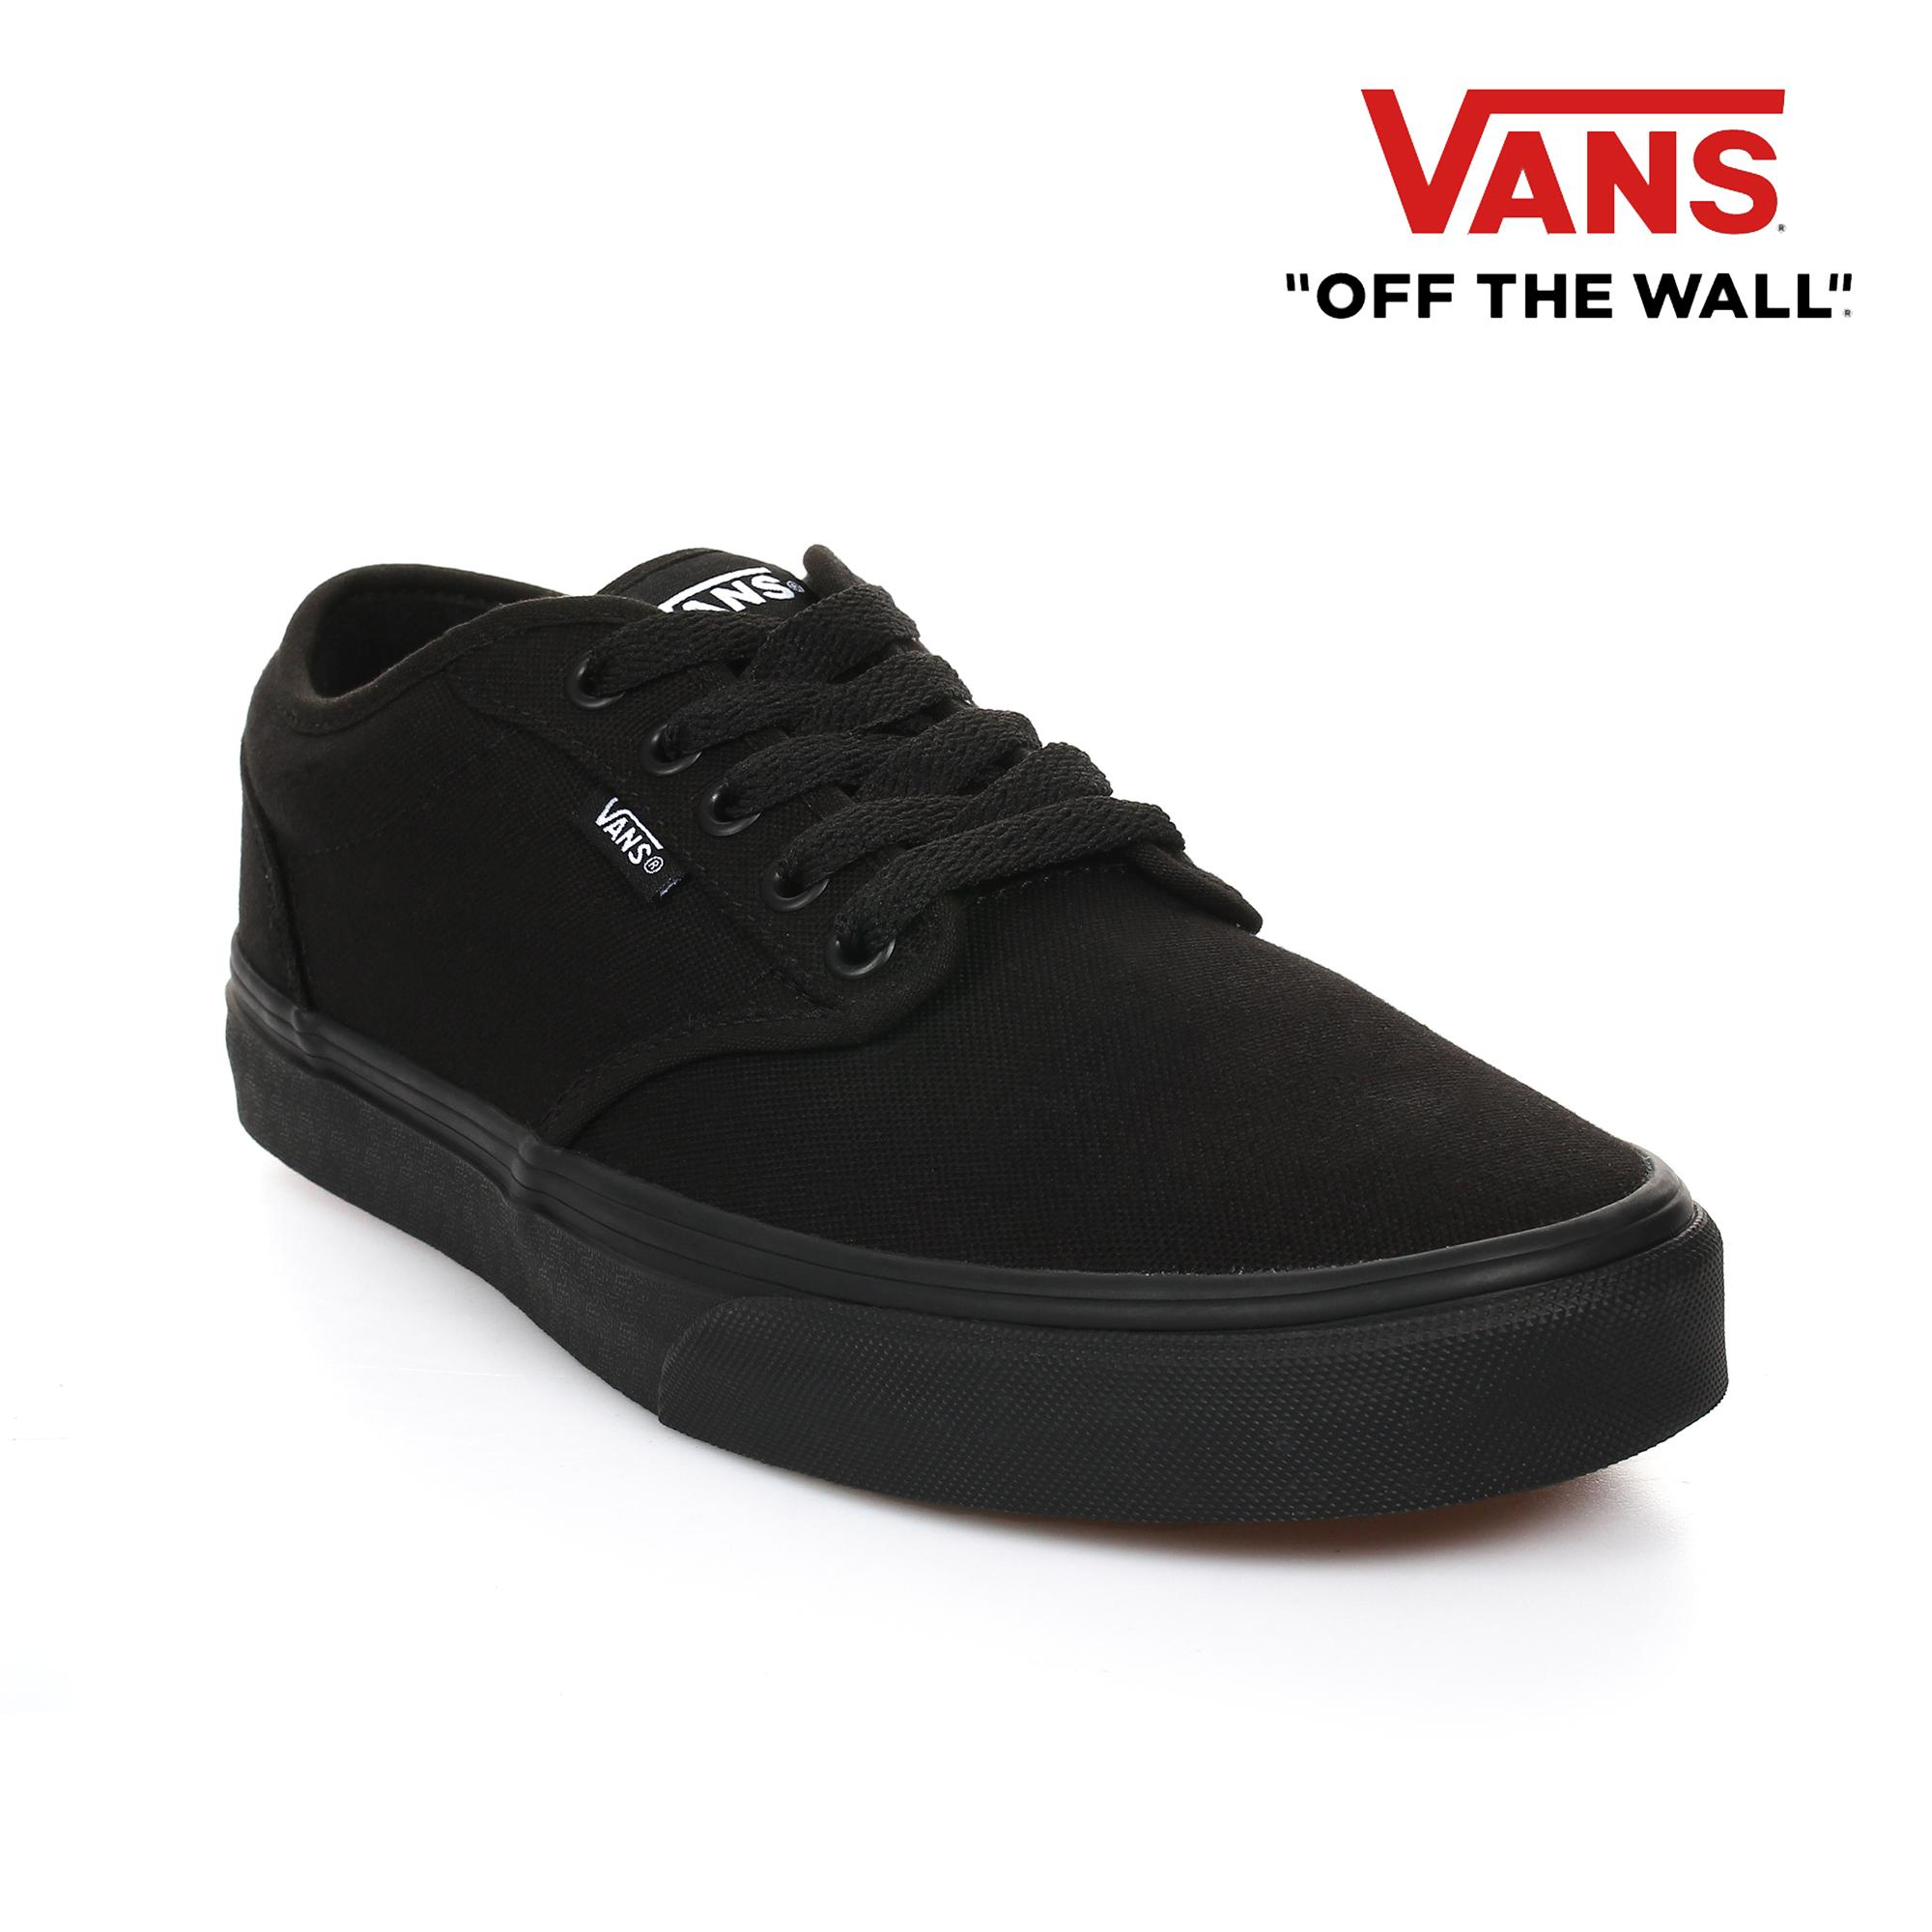 47a584d2d7a Vans Shoes for Men Philippines - Vans Men s Shoes for sale - prices    reviews